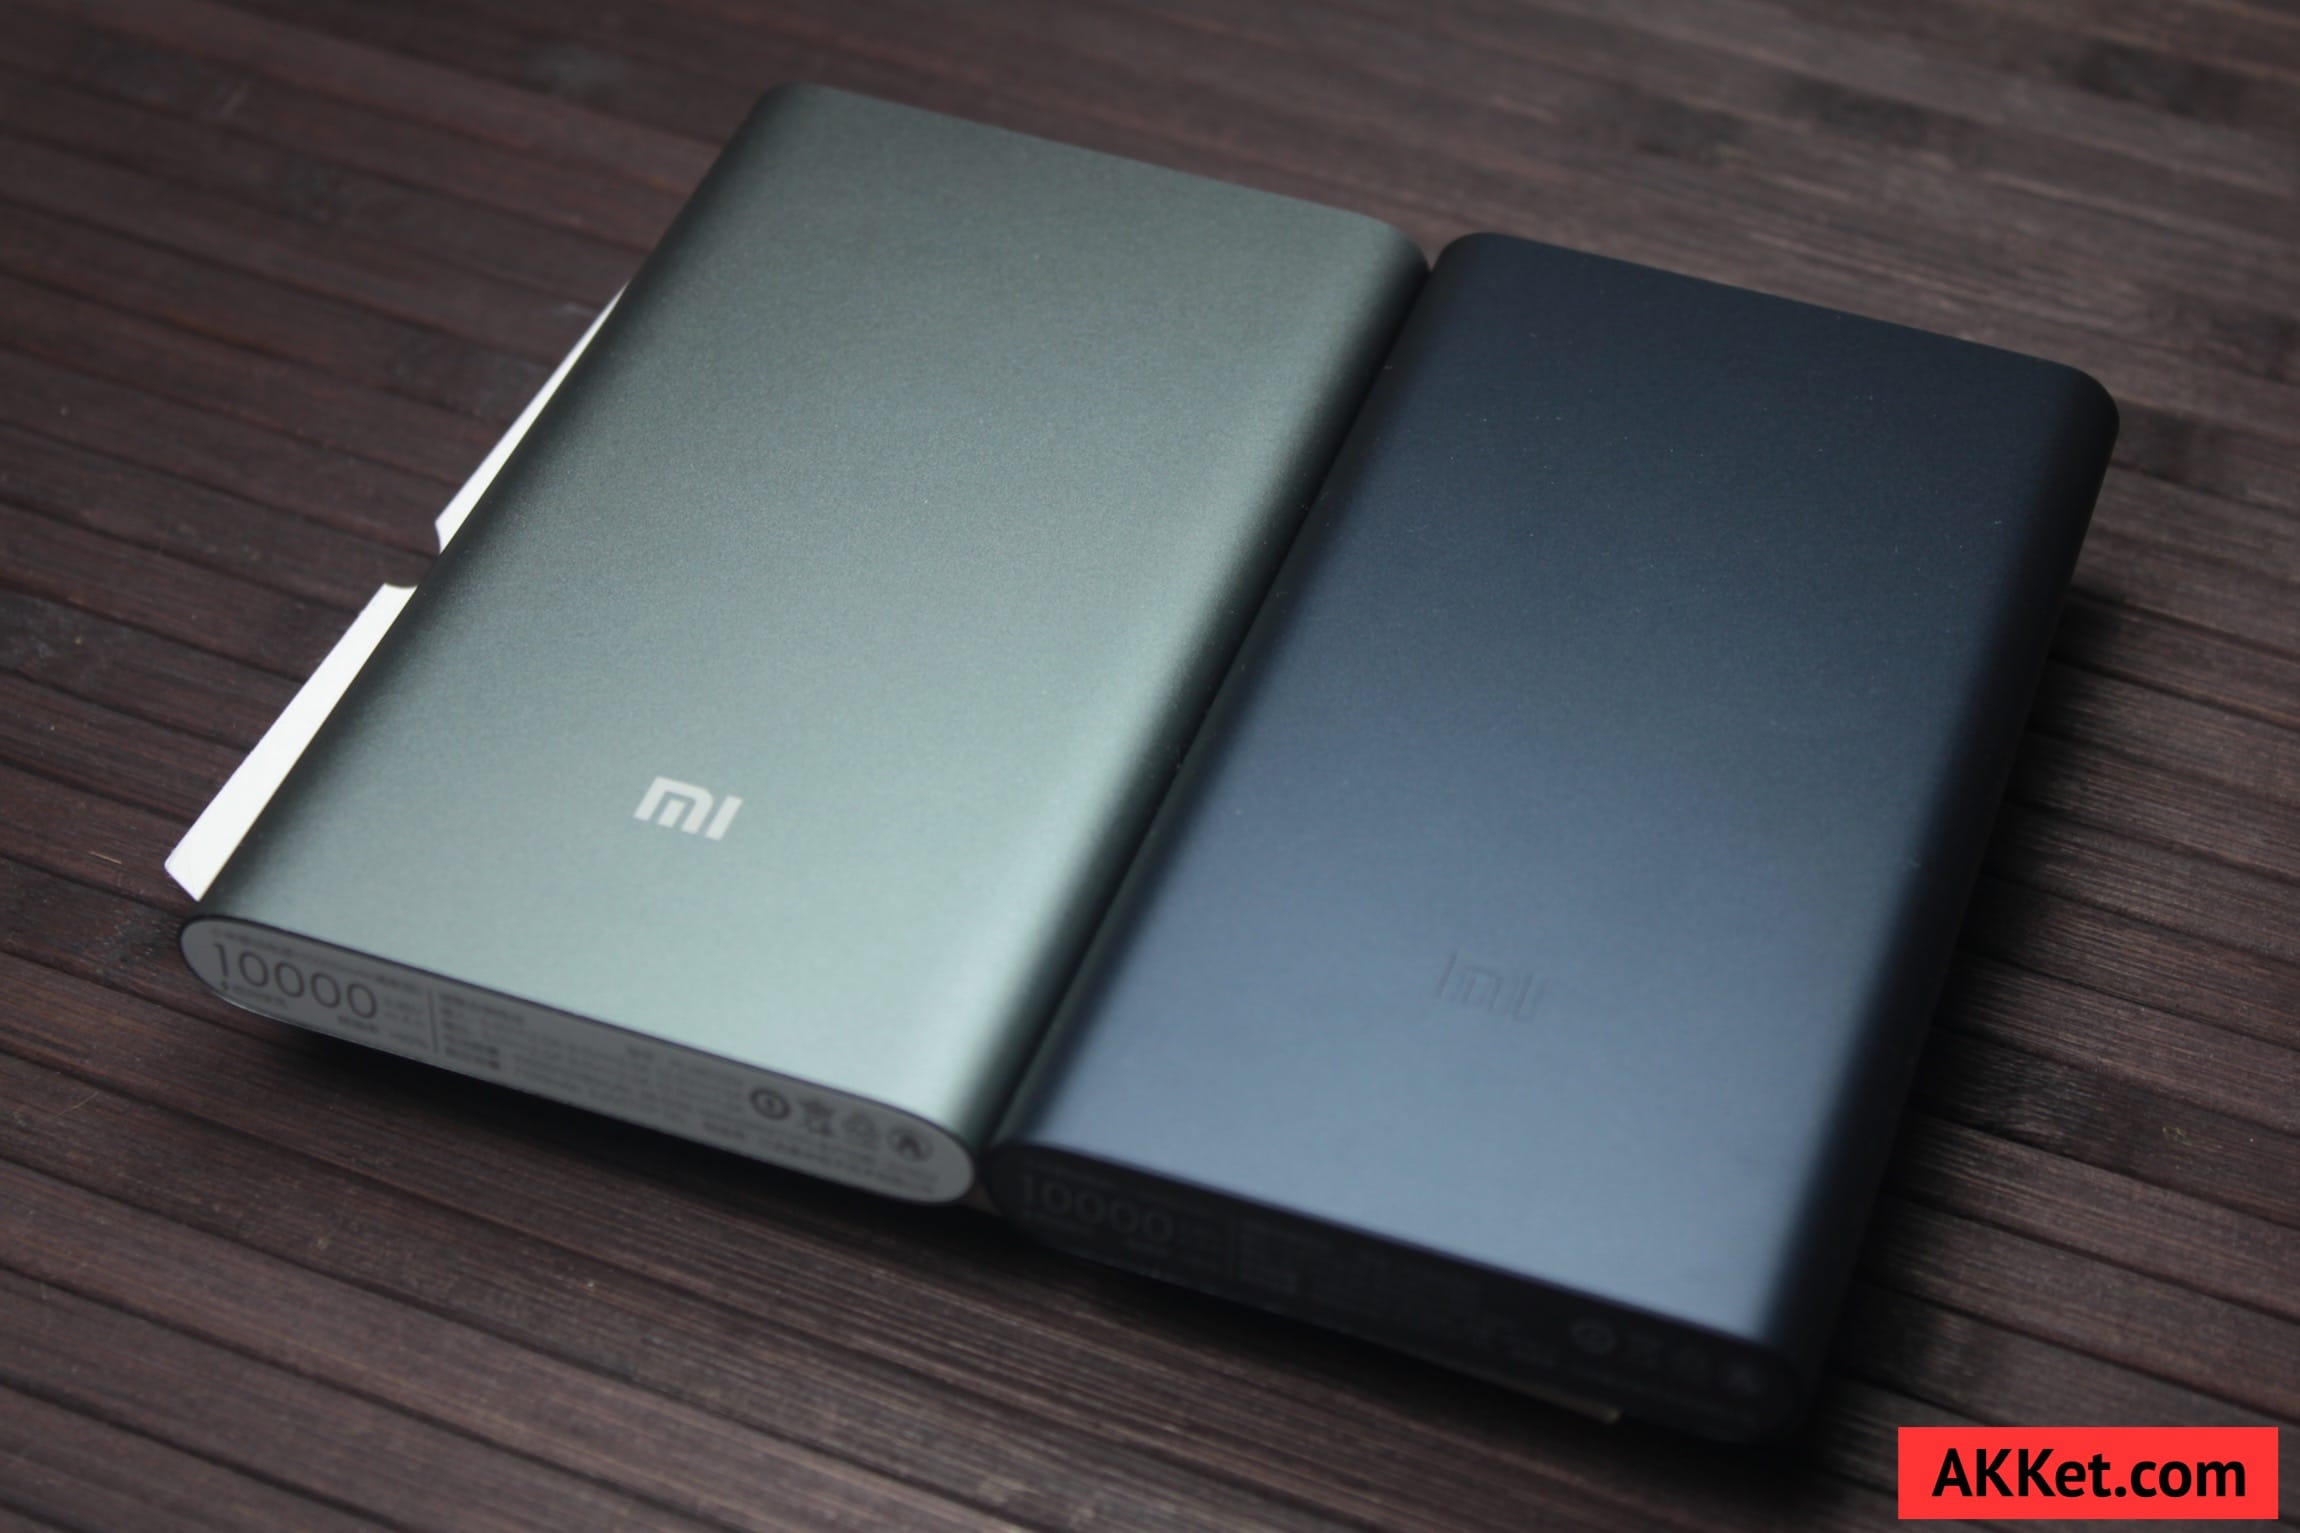 Xiaomi Mi Power Bank 10000 mAh Review iPhone SE AKKet.com 13